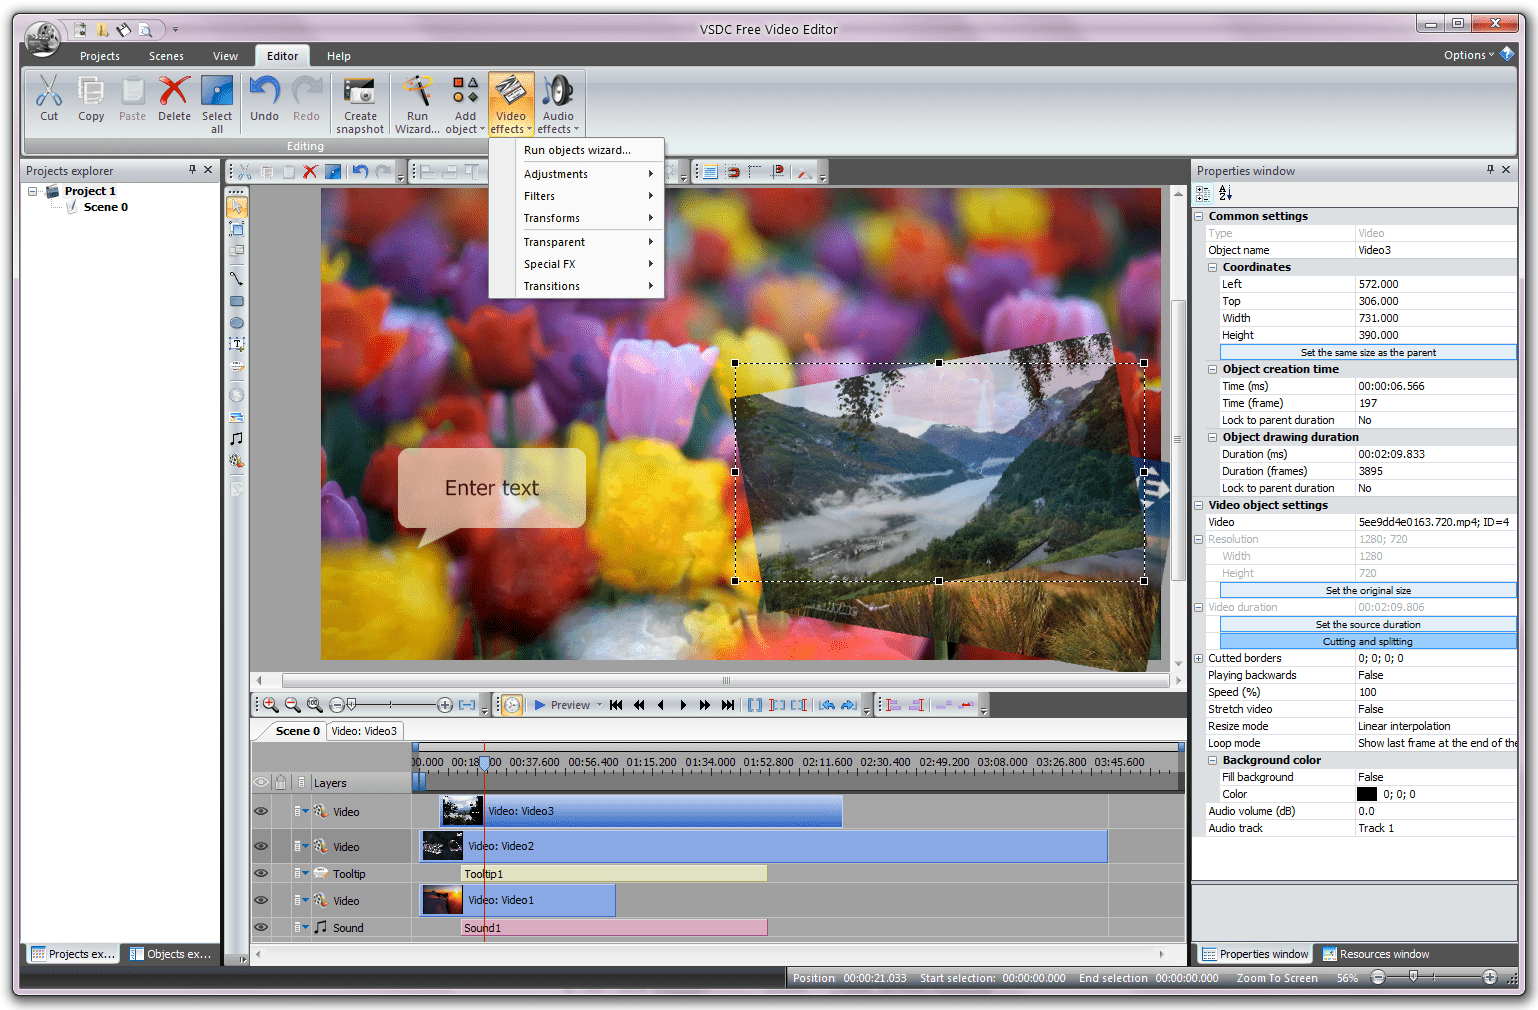 Top 6 Free Video Editing Software Programs